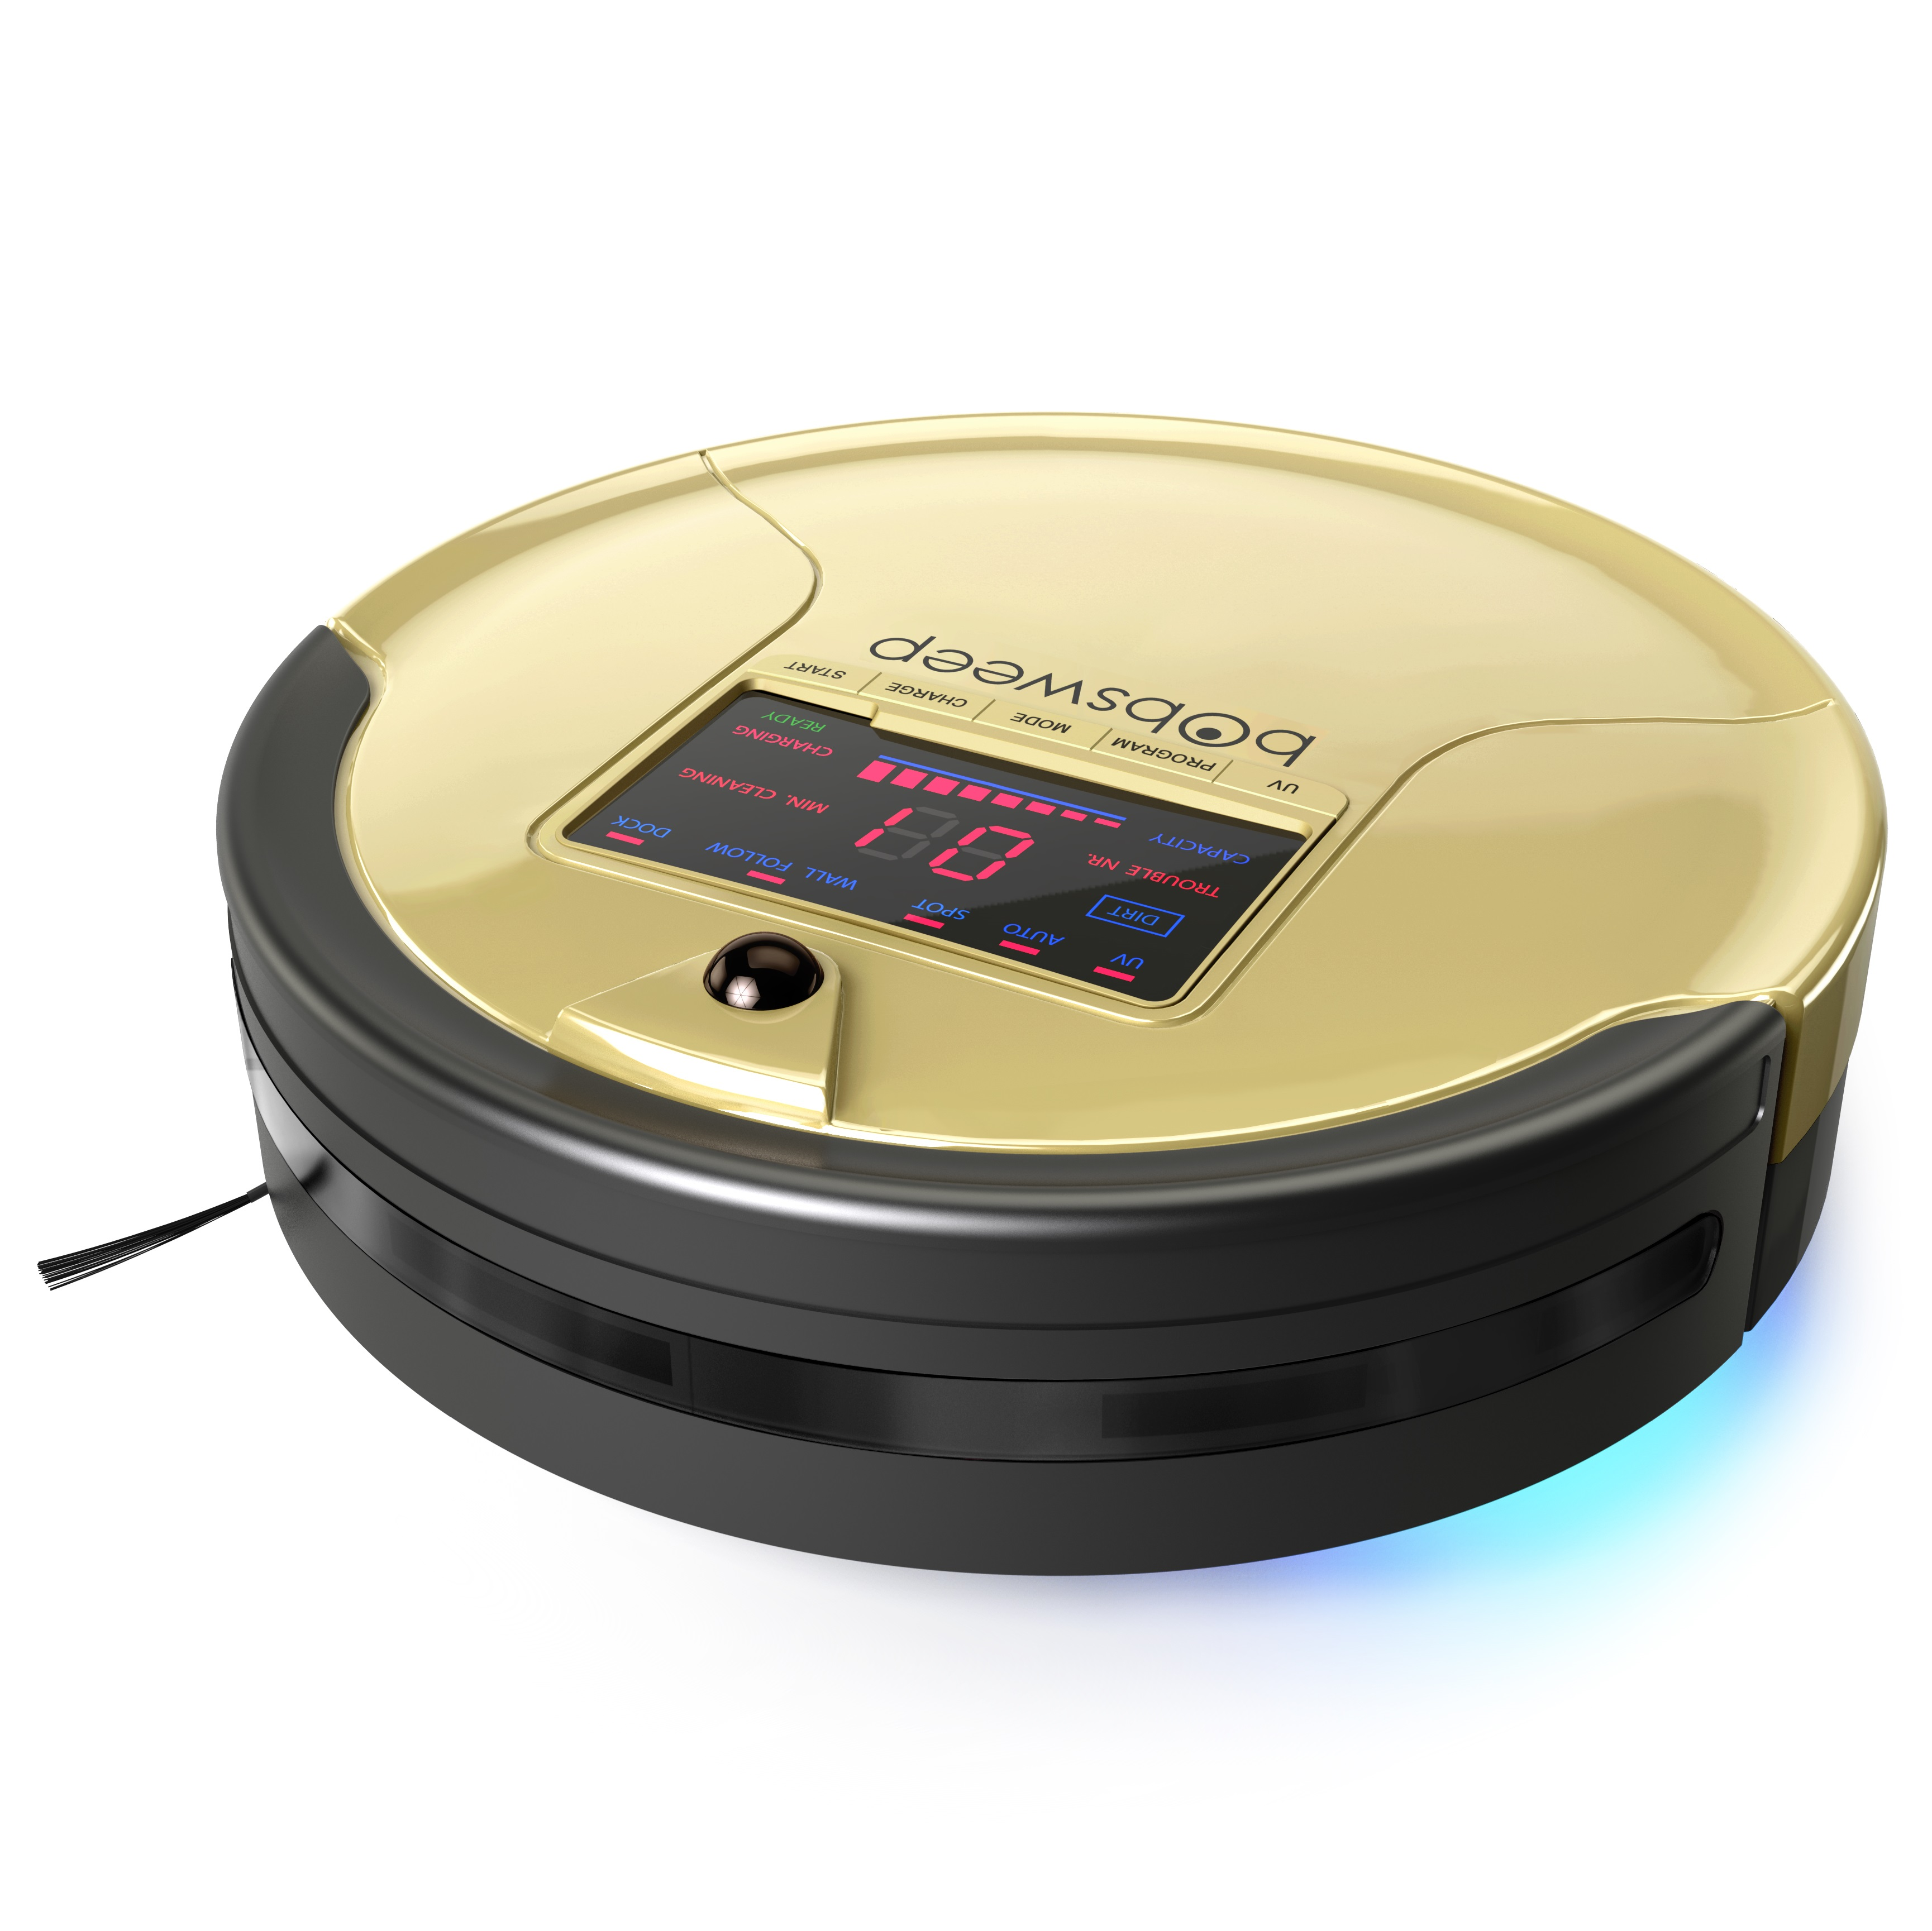 bObsweep PetHair Robotic Vacuum Cleaner and Mop, Champagne